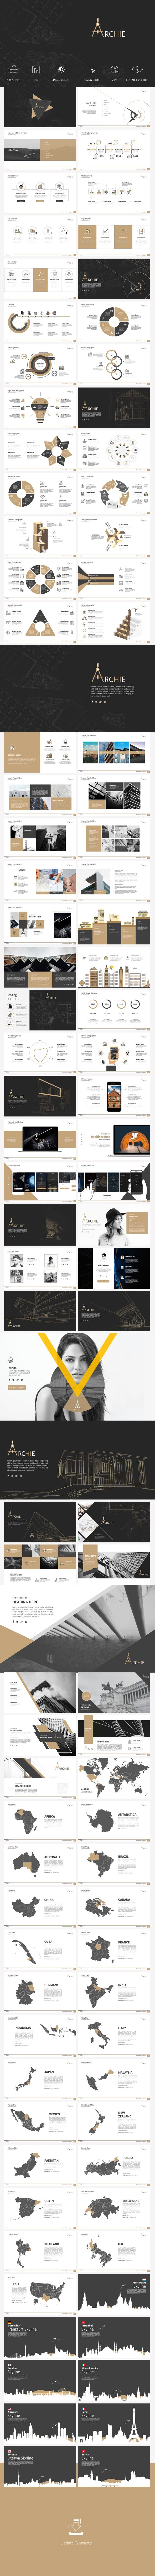 Archie Presentation Template - #Business #PowerPoint #Templates Download here: https://graphicriver.net/item/archie-presentation-template/19442322?ref=alena994